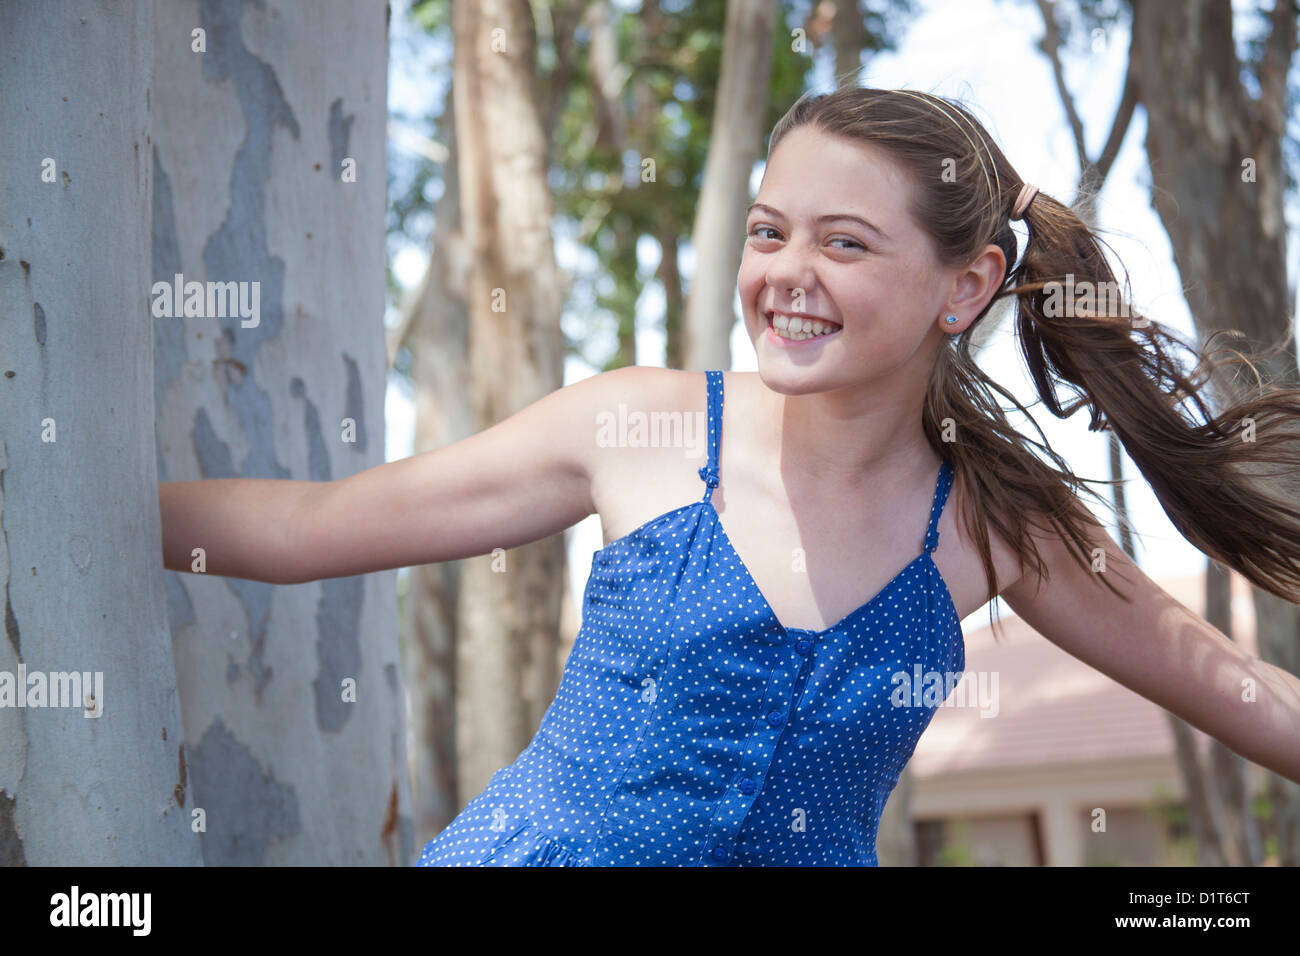 a young girl plays hide and seek in the woods - Stock Image